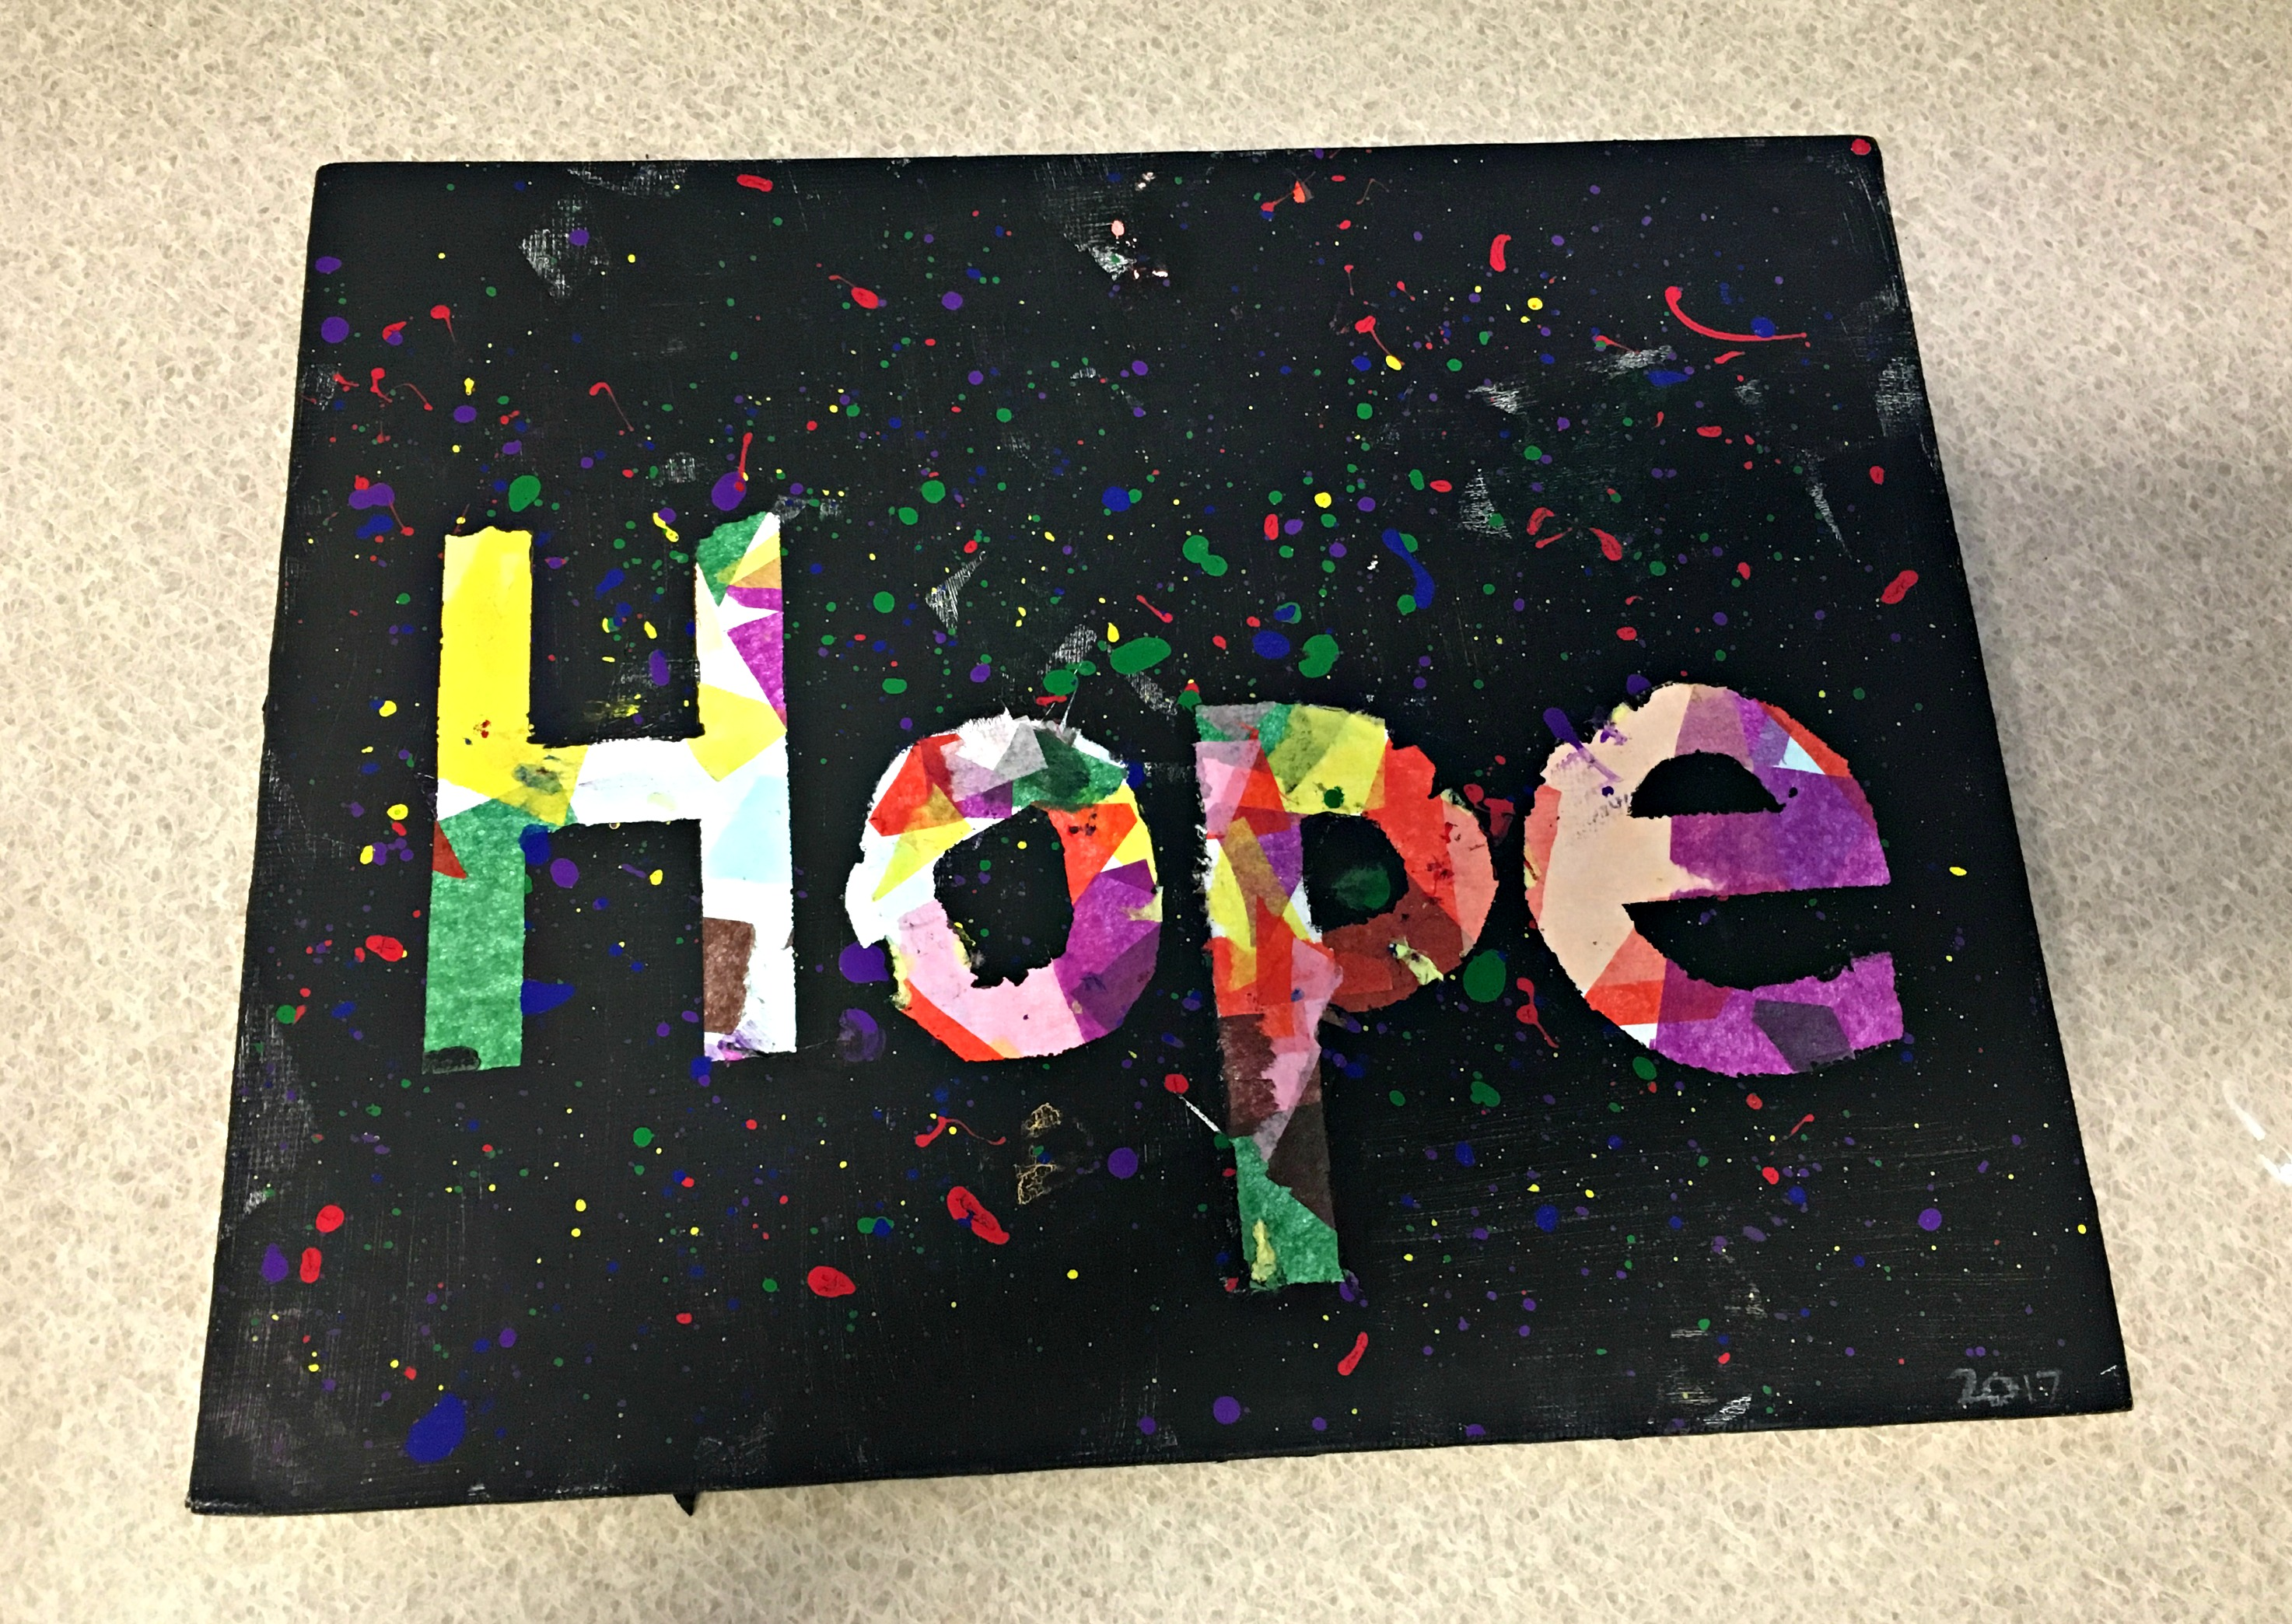 Inpatient Mental Health Artwork - HOPE